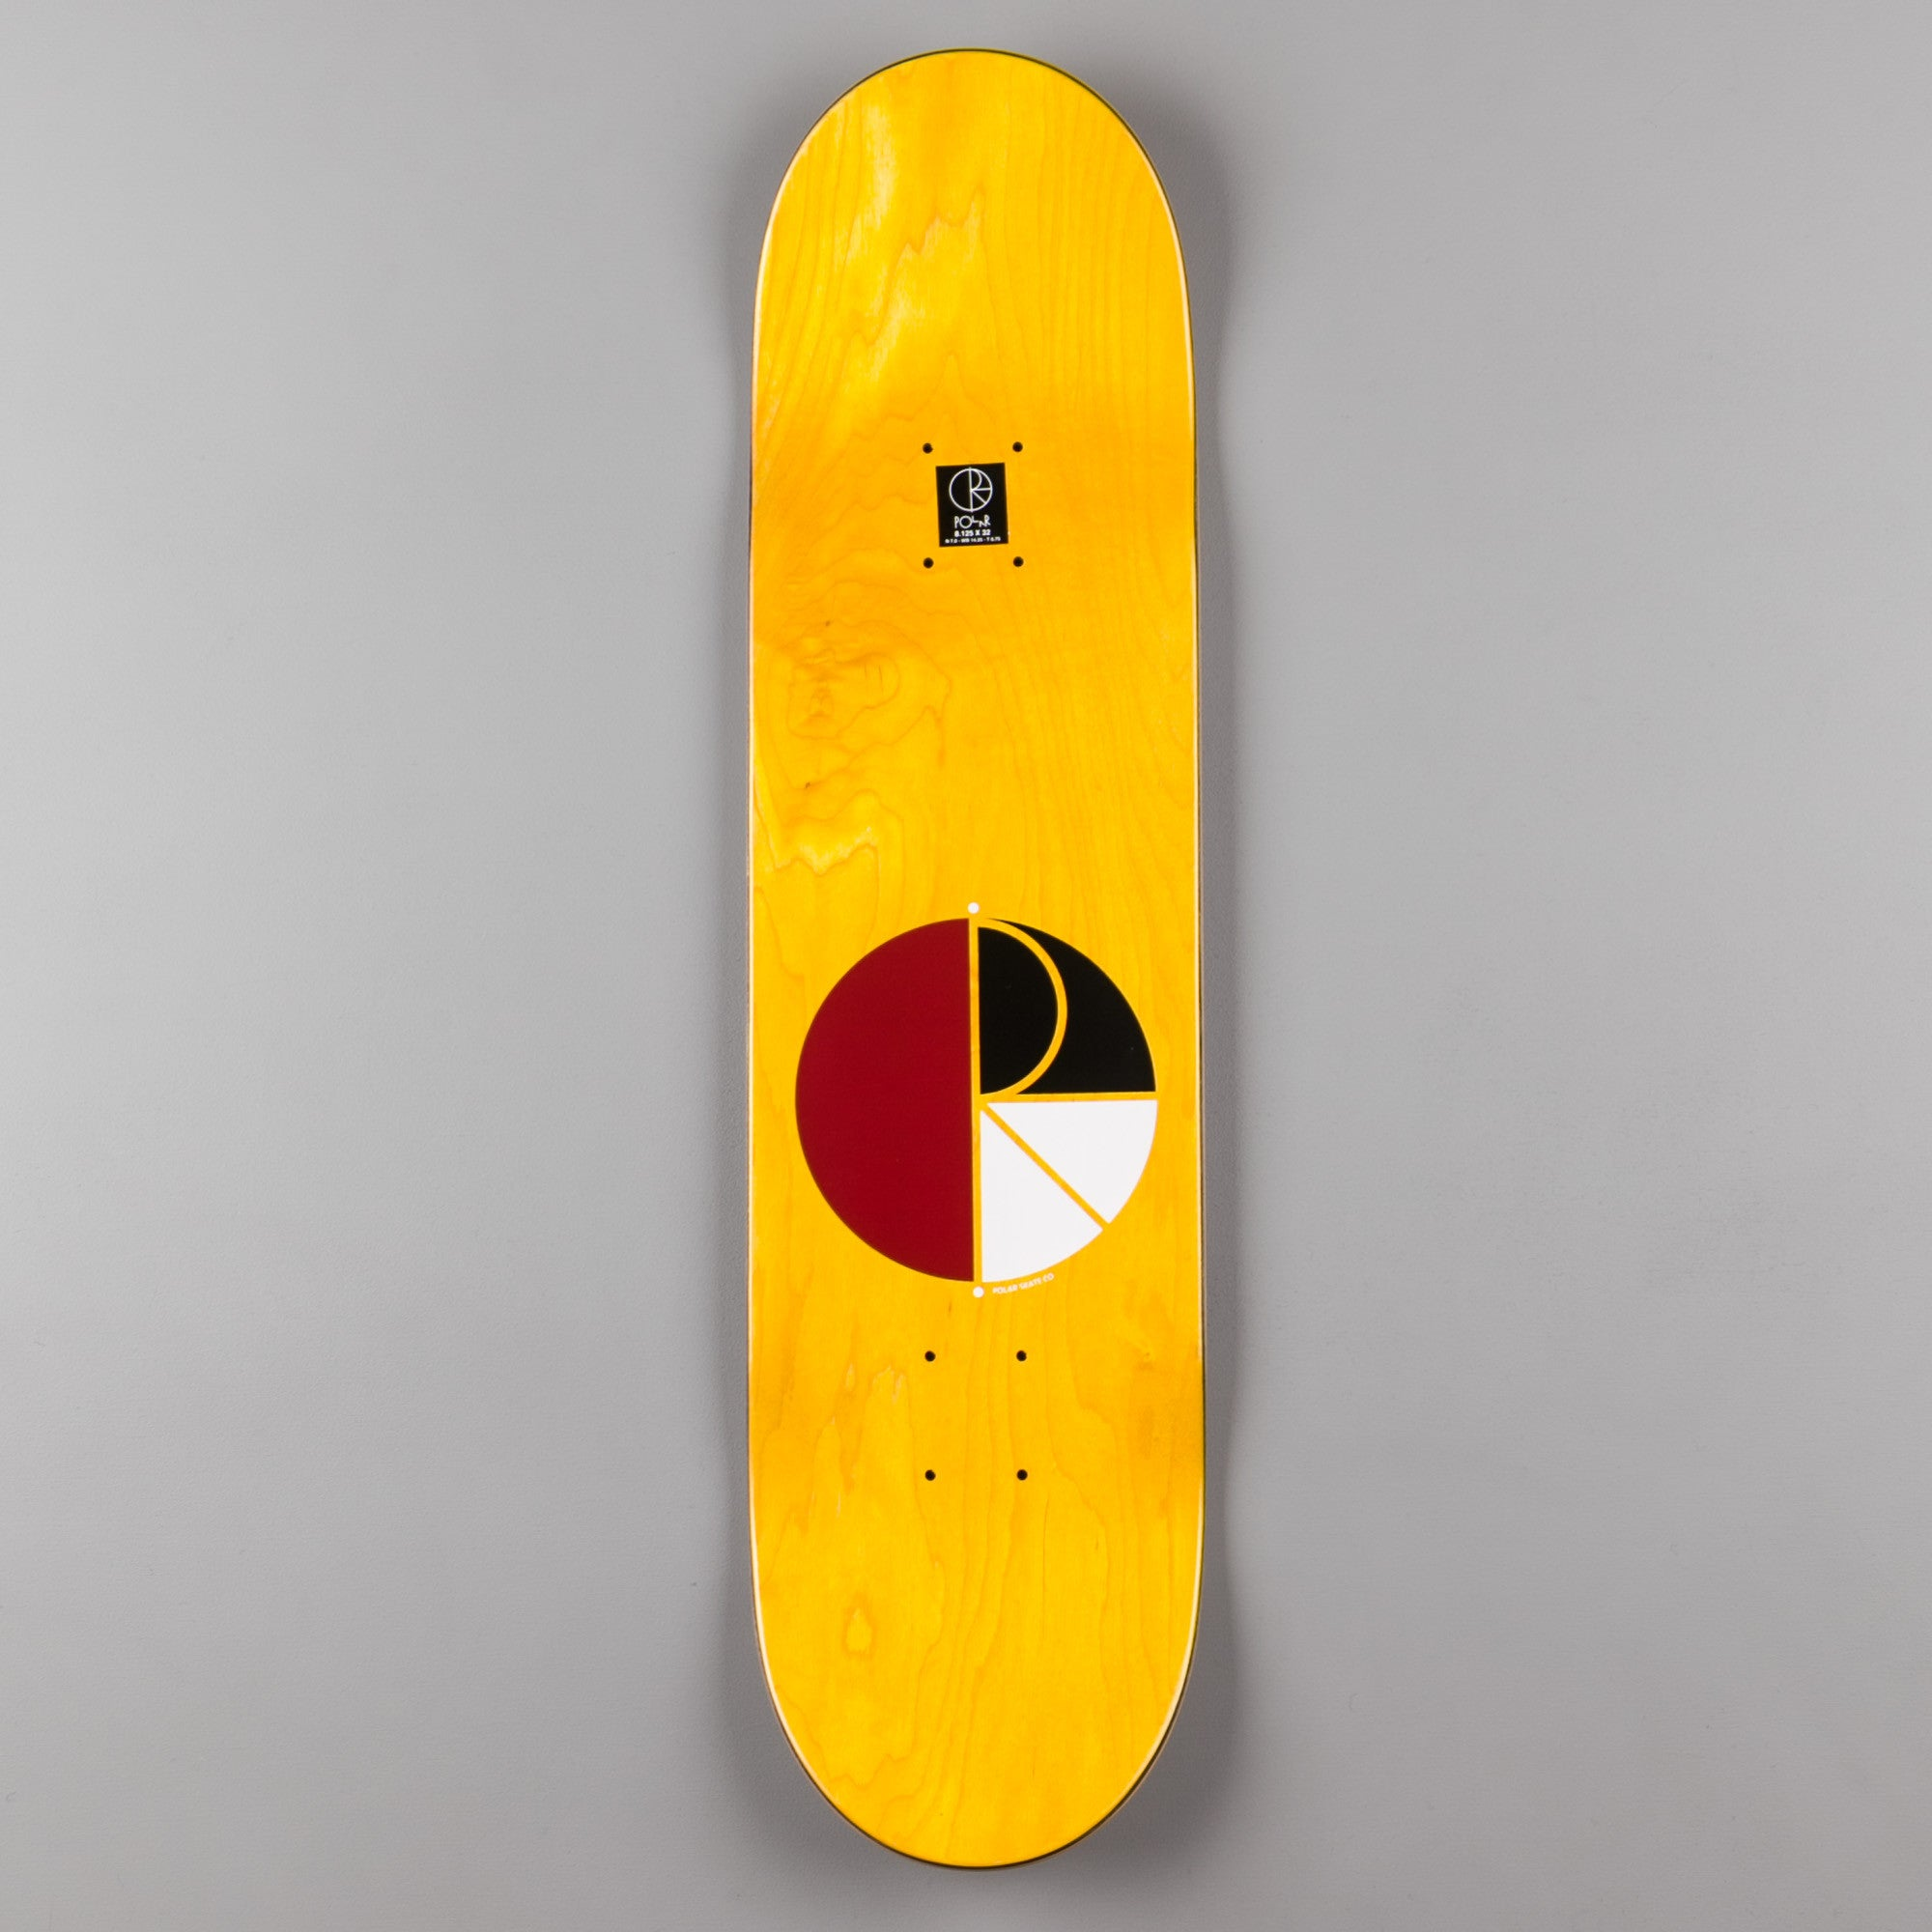 Polar Kevin Rodrigues Punch Out Deck  - Red - 8.125""